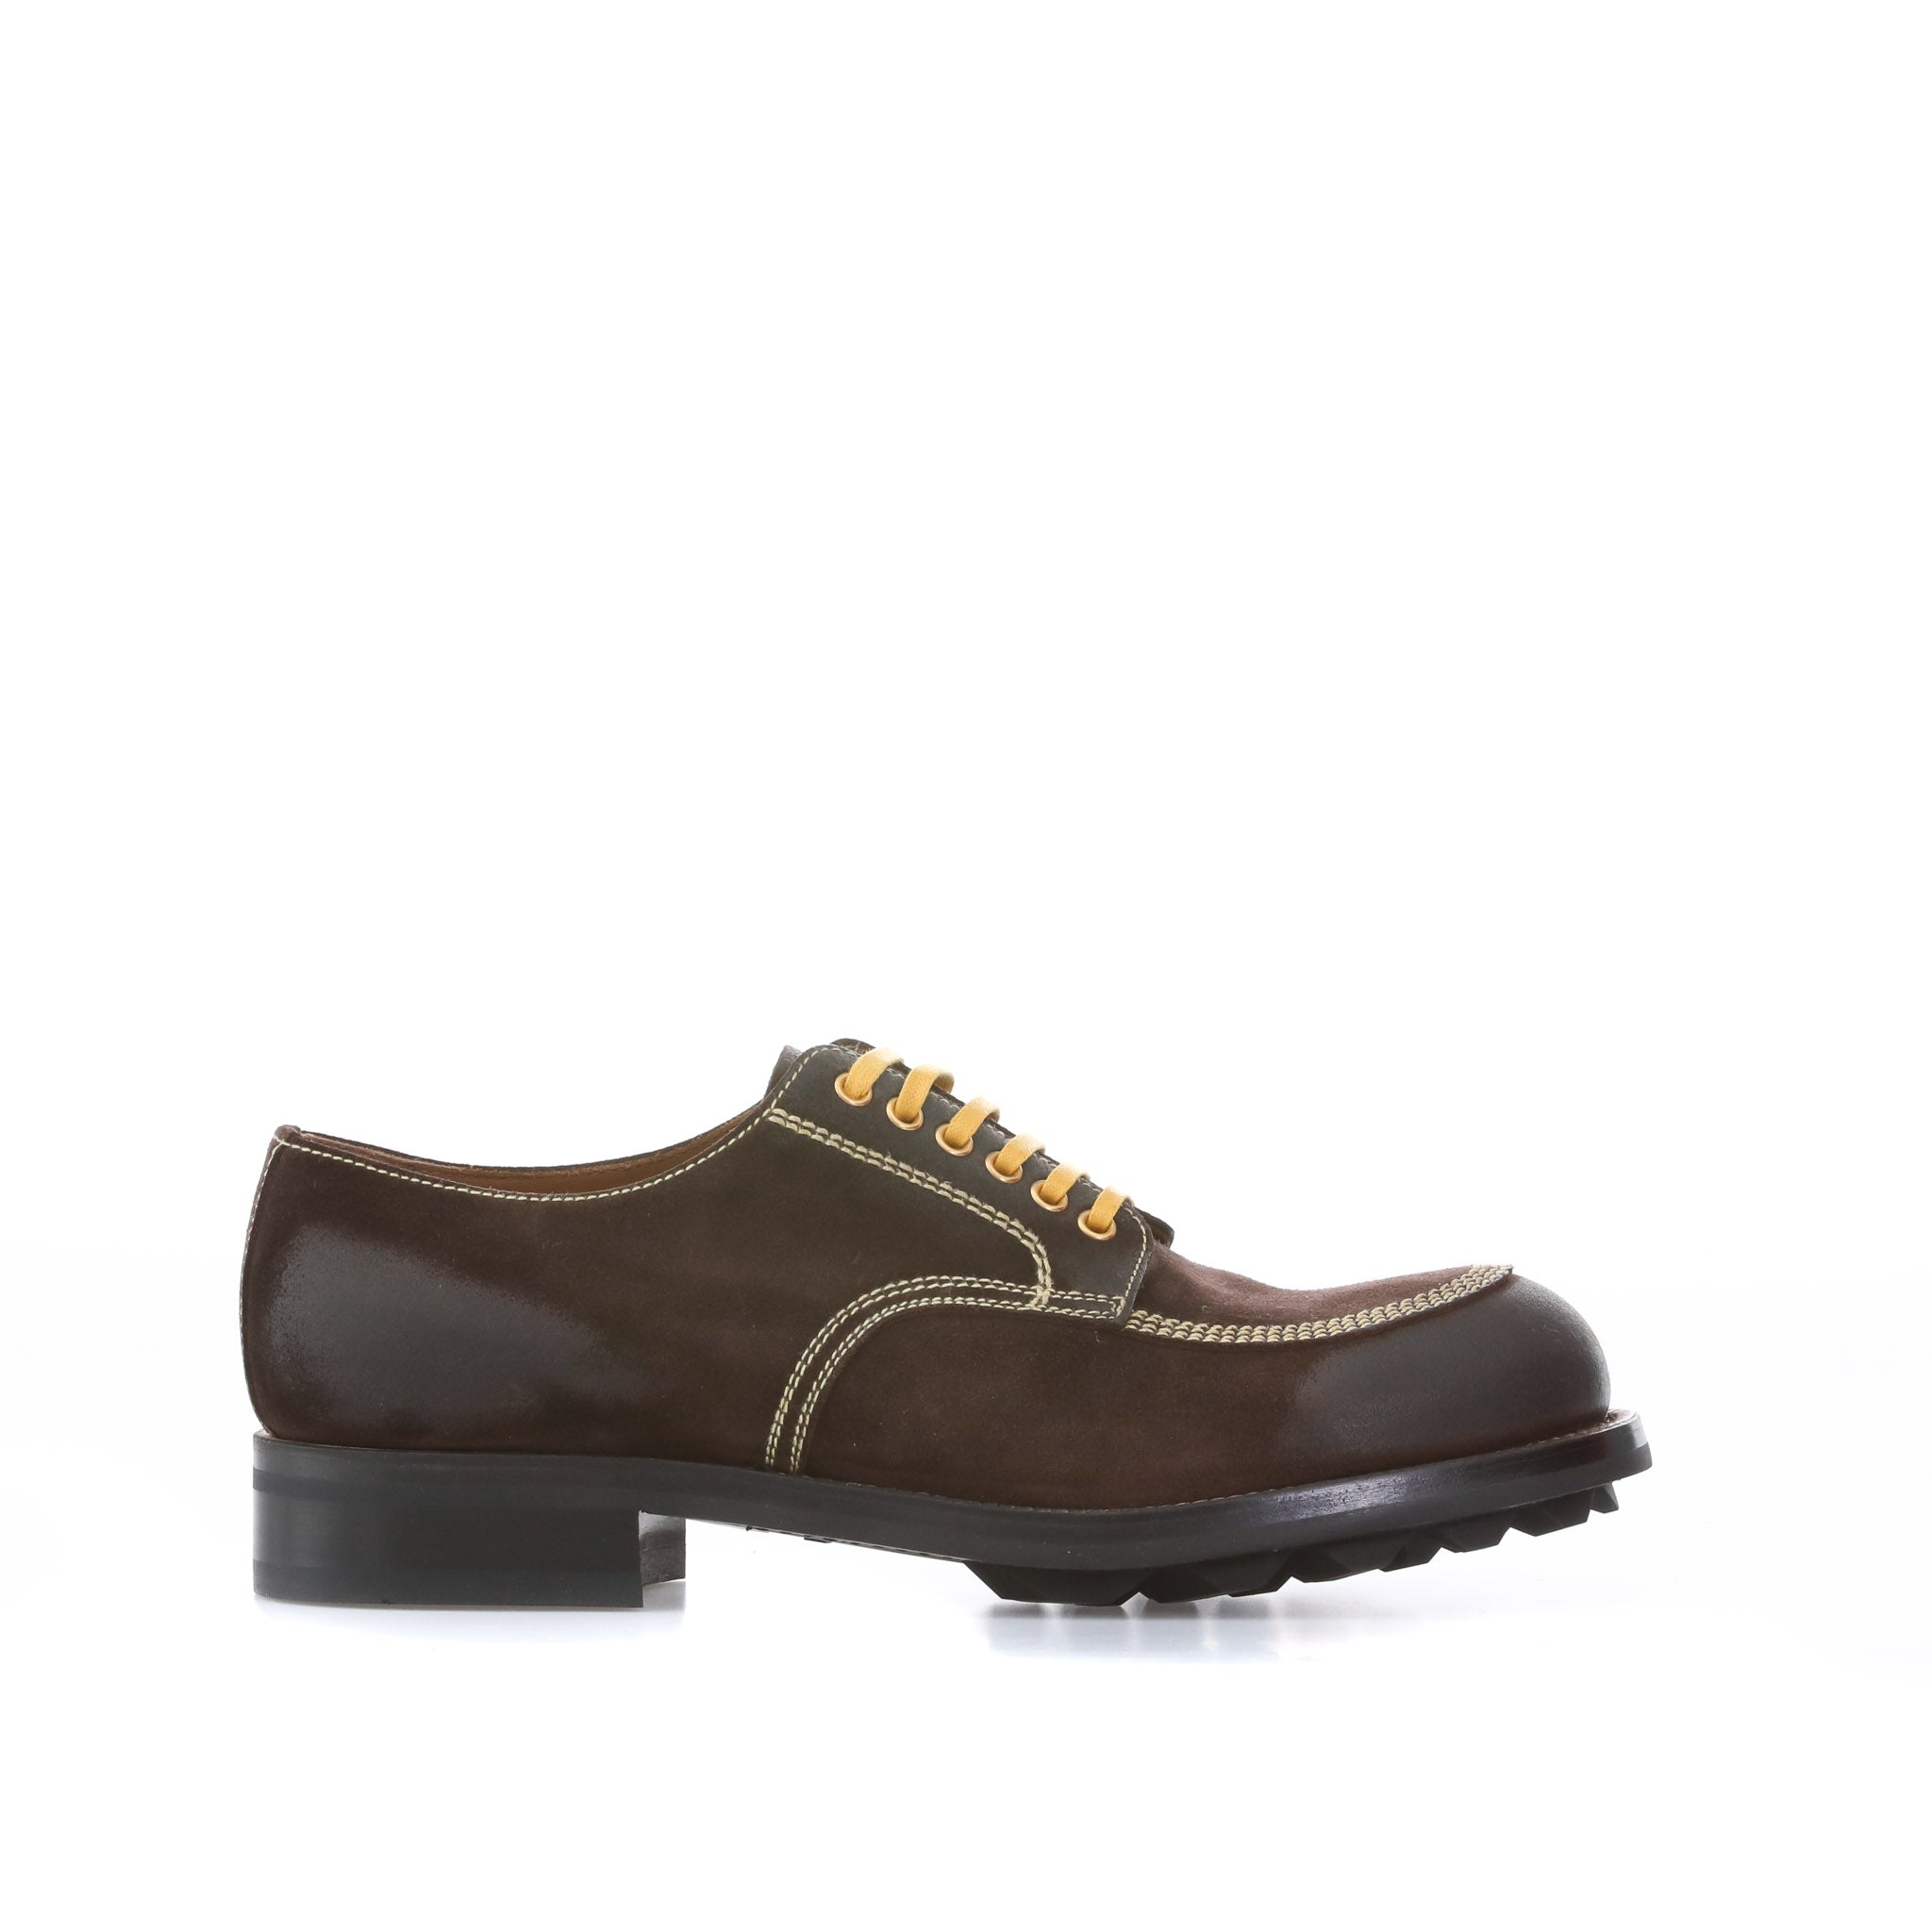 Prada Suede Derby Shoes